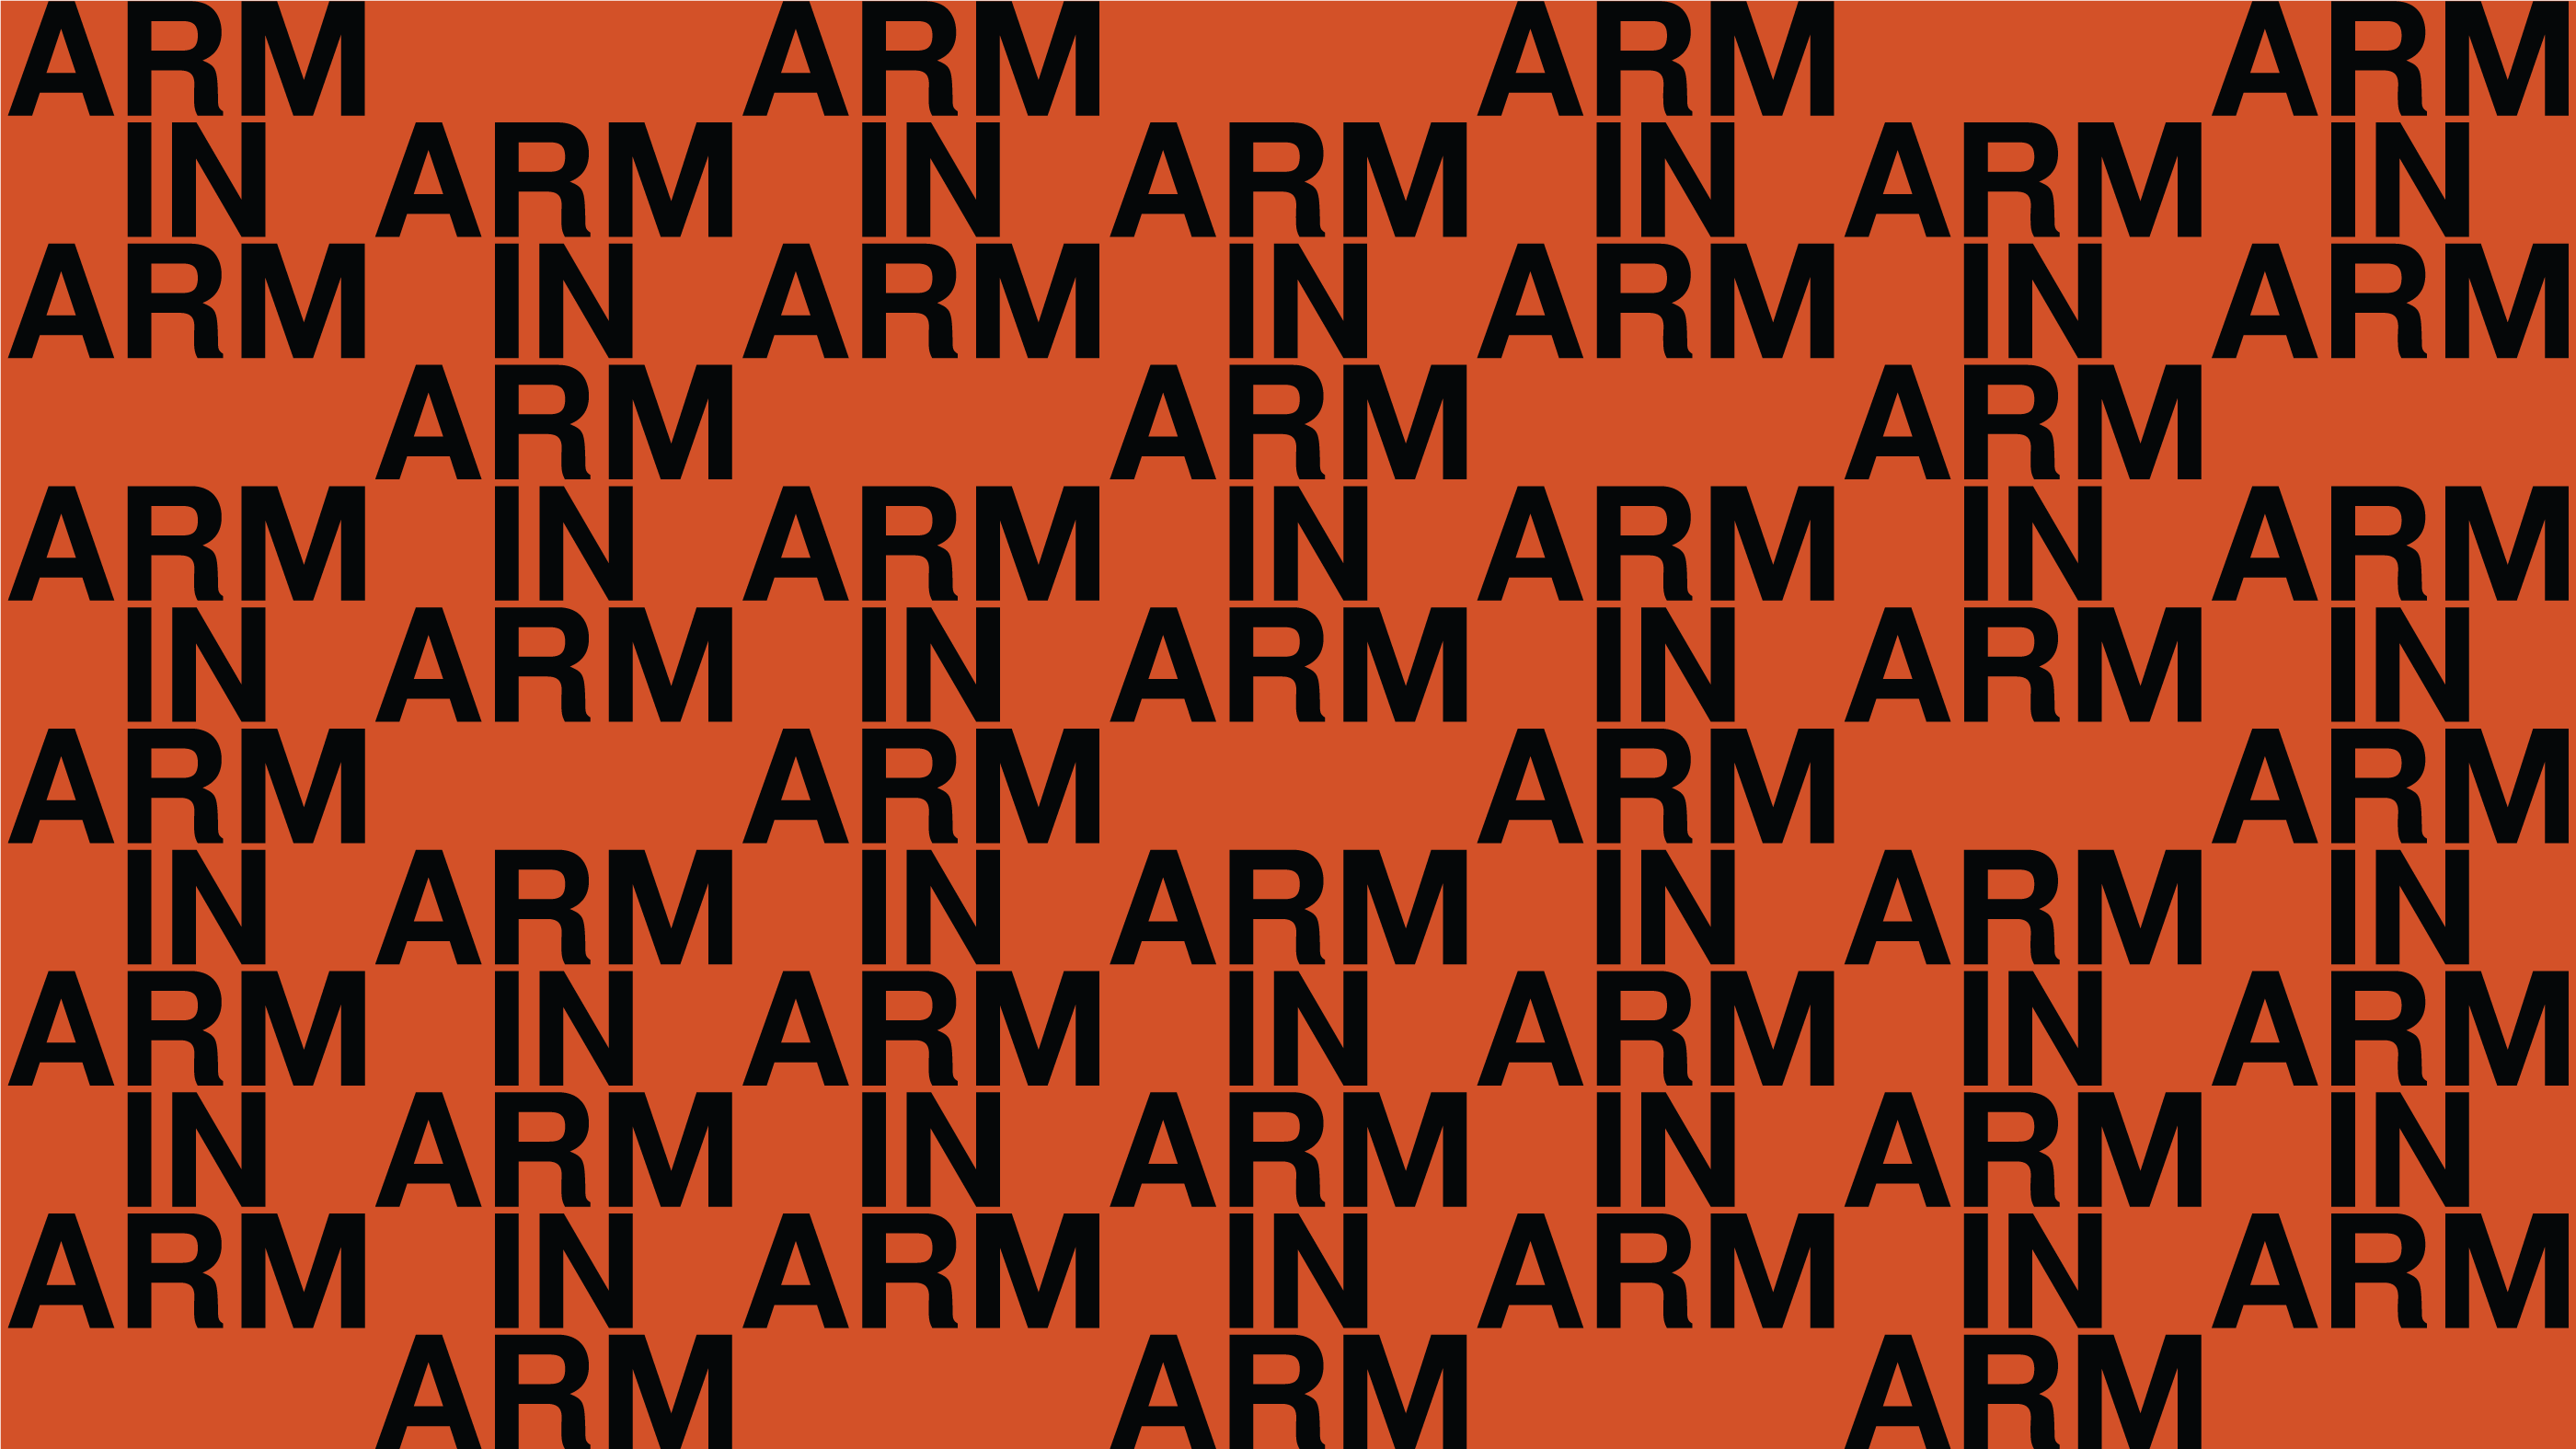 Arm-in-Arm_8